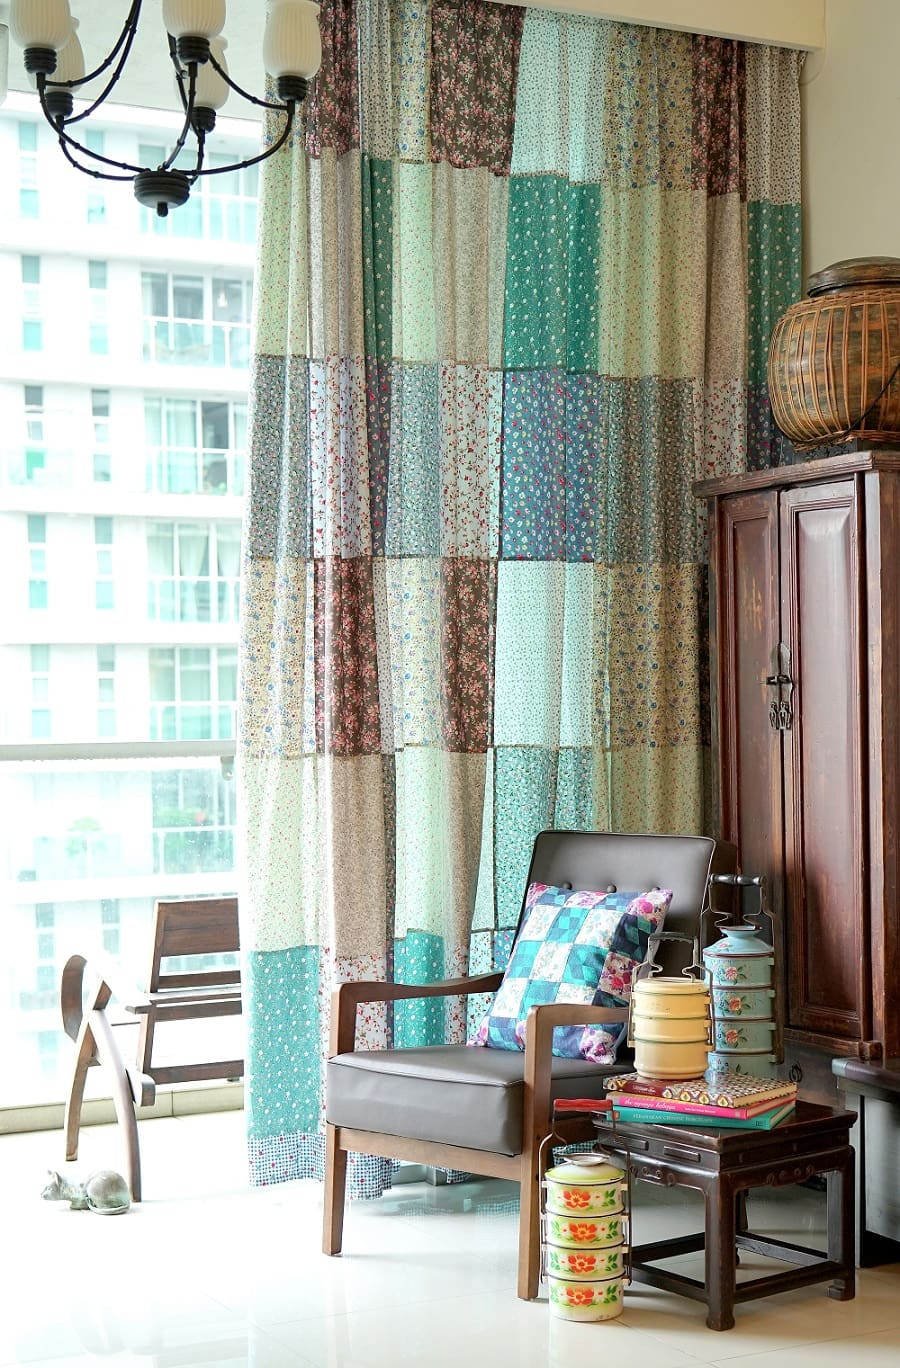 Homemade Patchwork Curtains